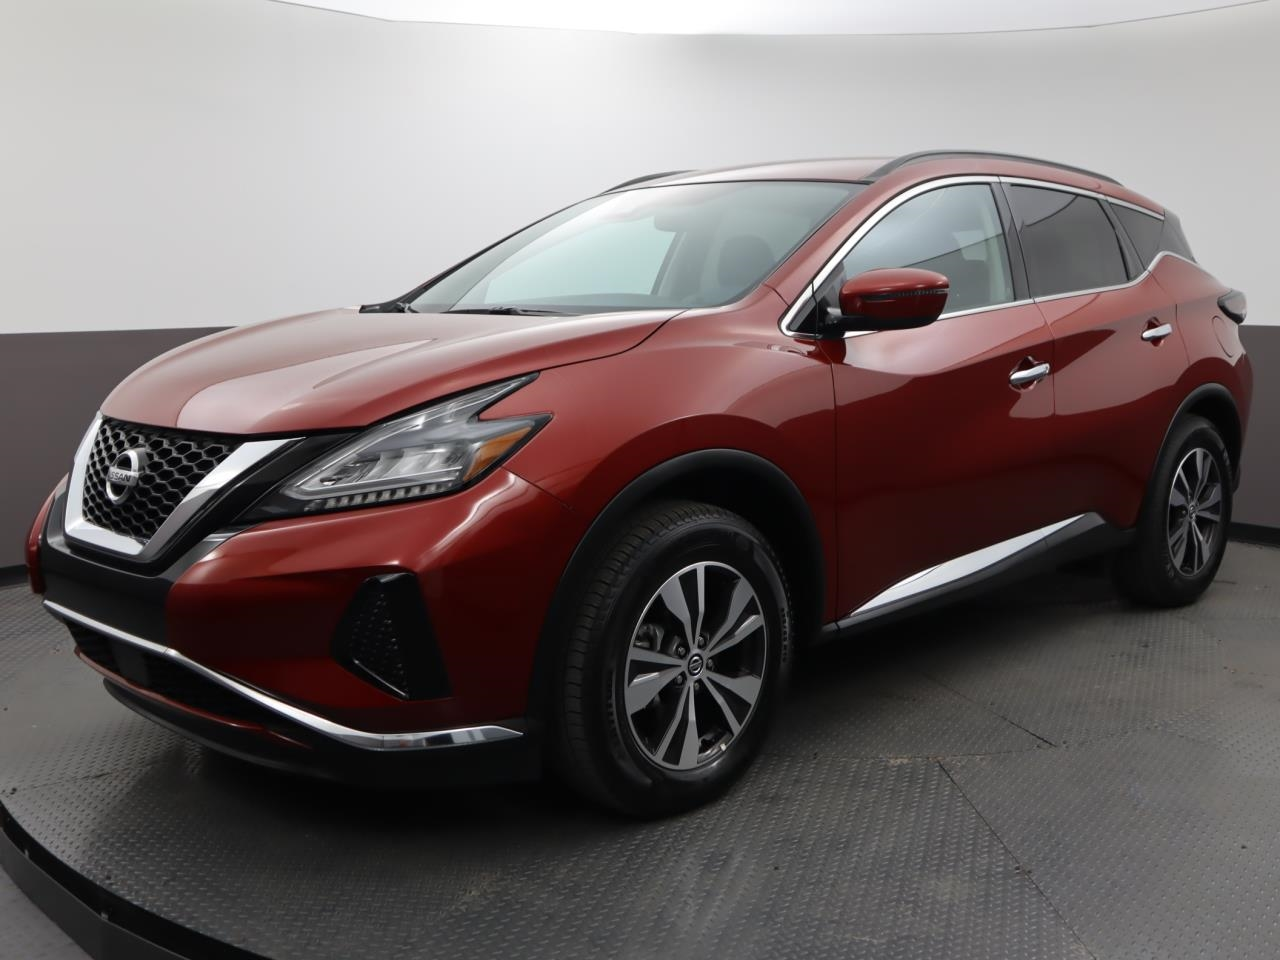 Used NISSAN MURANO 2020 MARGATE SV